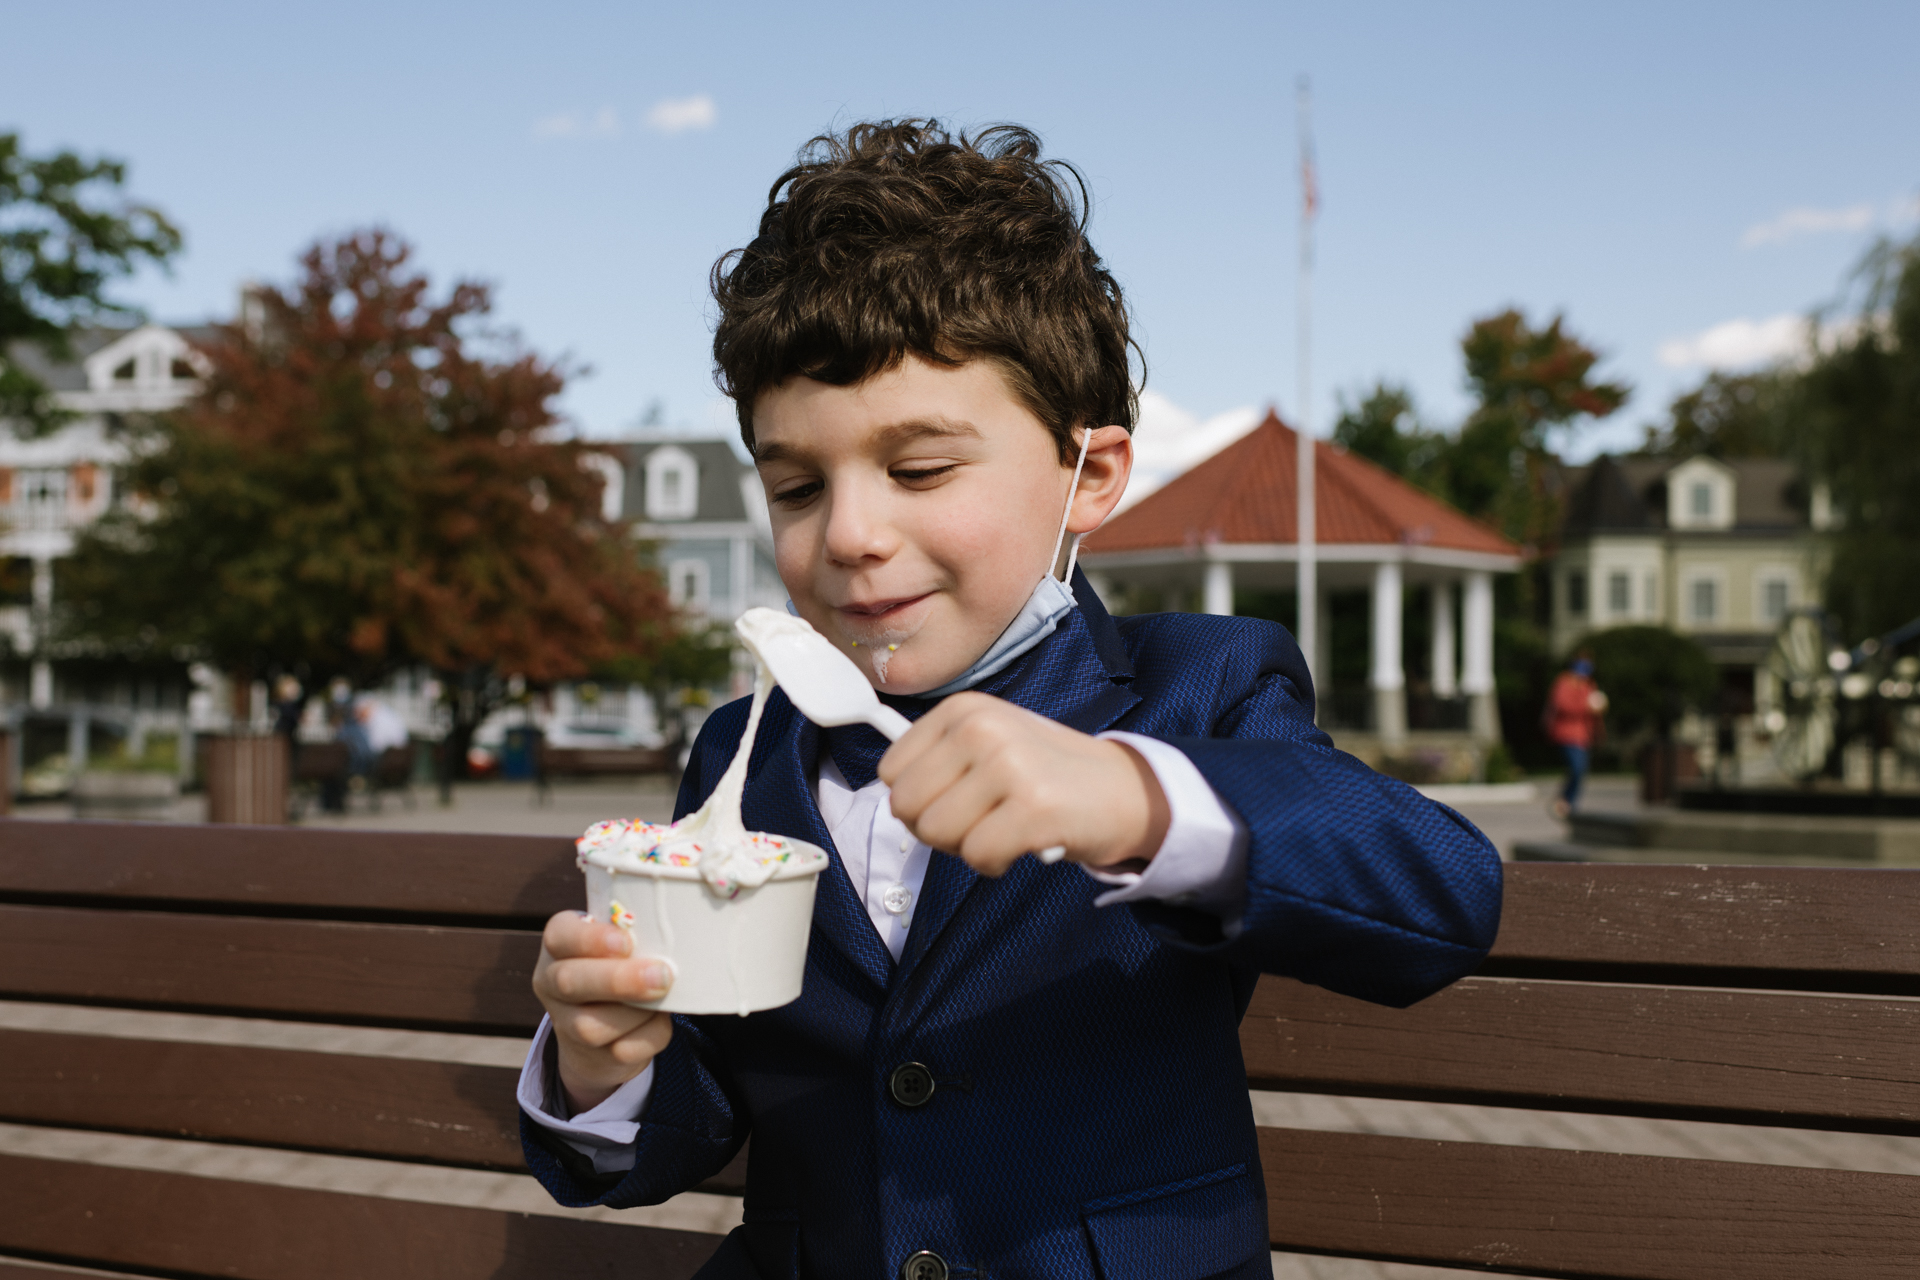 NY Wedding Ceremony Photo from Dockside Park, Cold Spring | A little boy smiles as he digs into his cup of ice cream